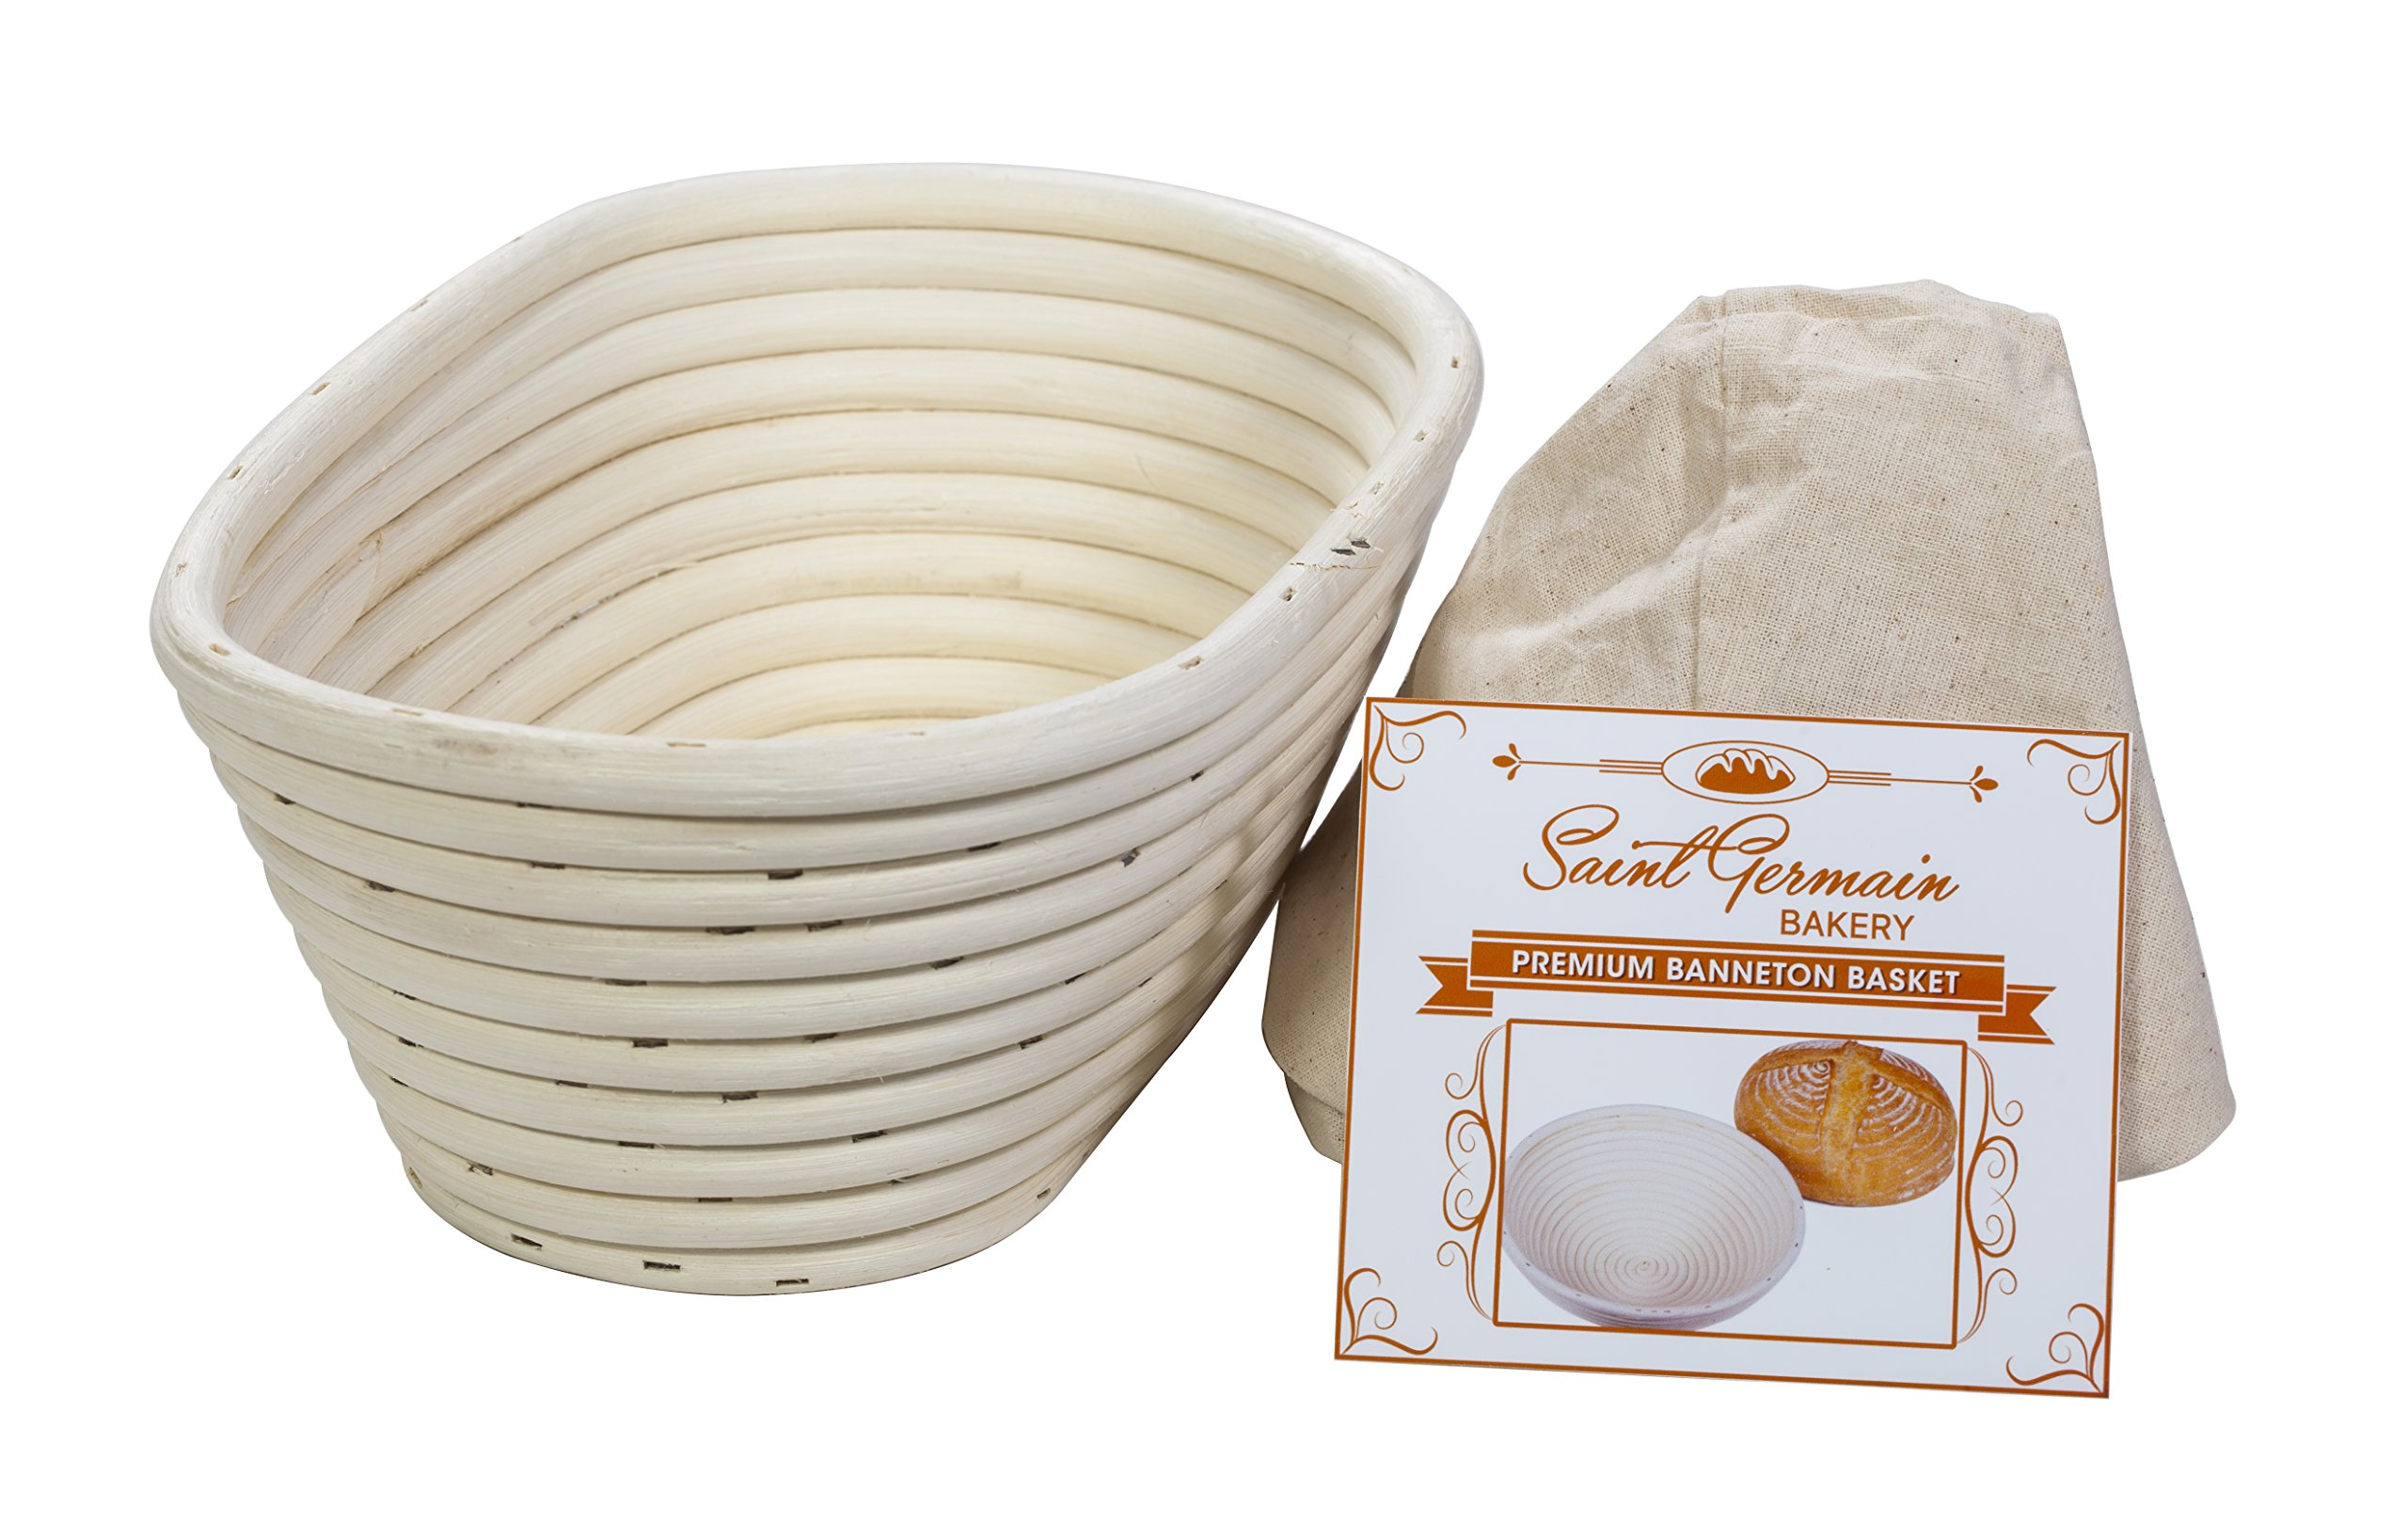 (10 x 6 x 4 inch) Premium Oval Banneton Basket with Liner - Perfect Brotform Proofing Basket for Making Beautiful Bread by Saint Germain Bakery